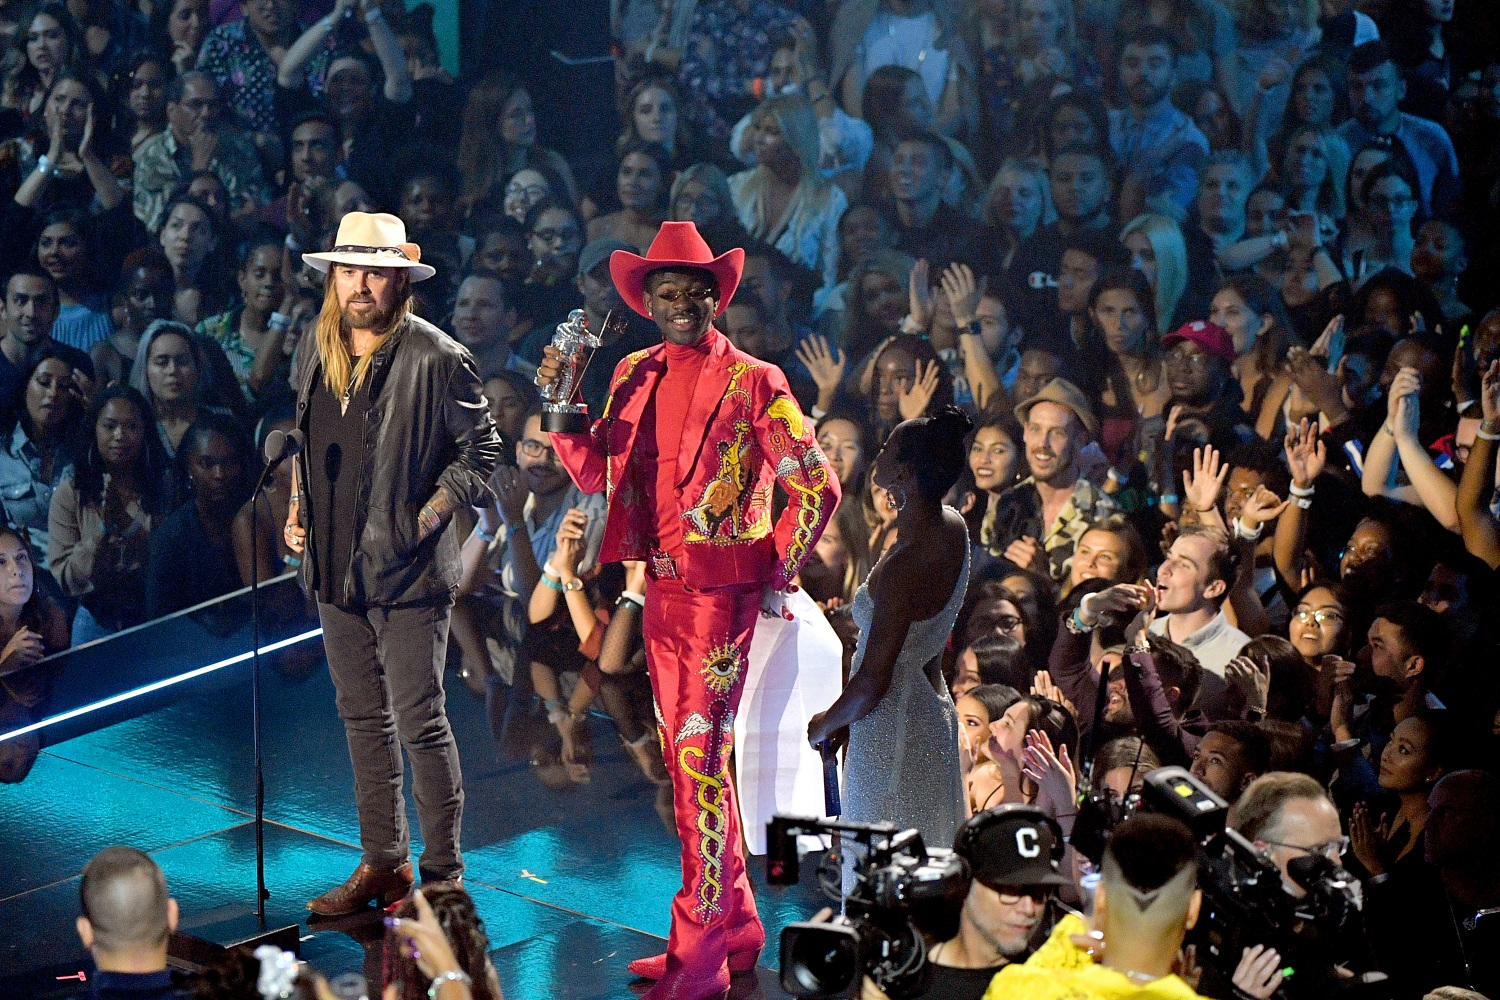 Two Very Special Performances Announced For The 62nd Annual GRAMMY Awards This Sunday